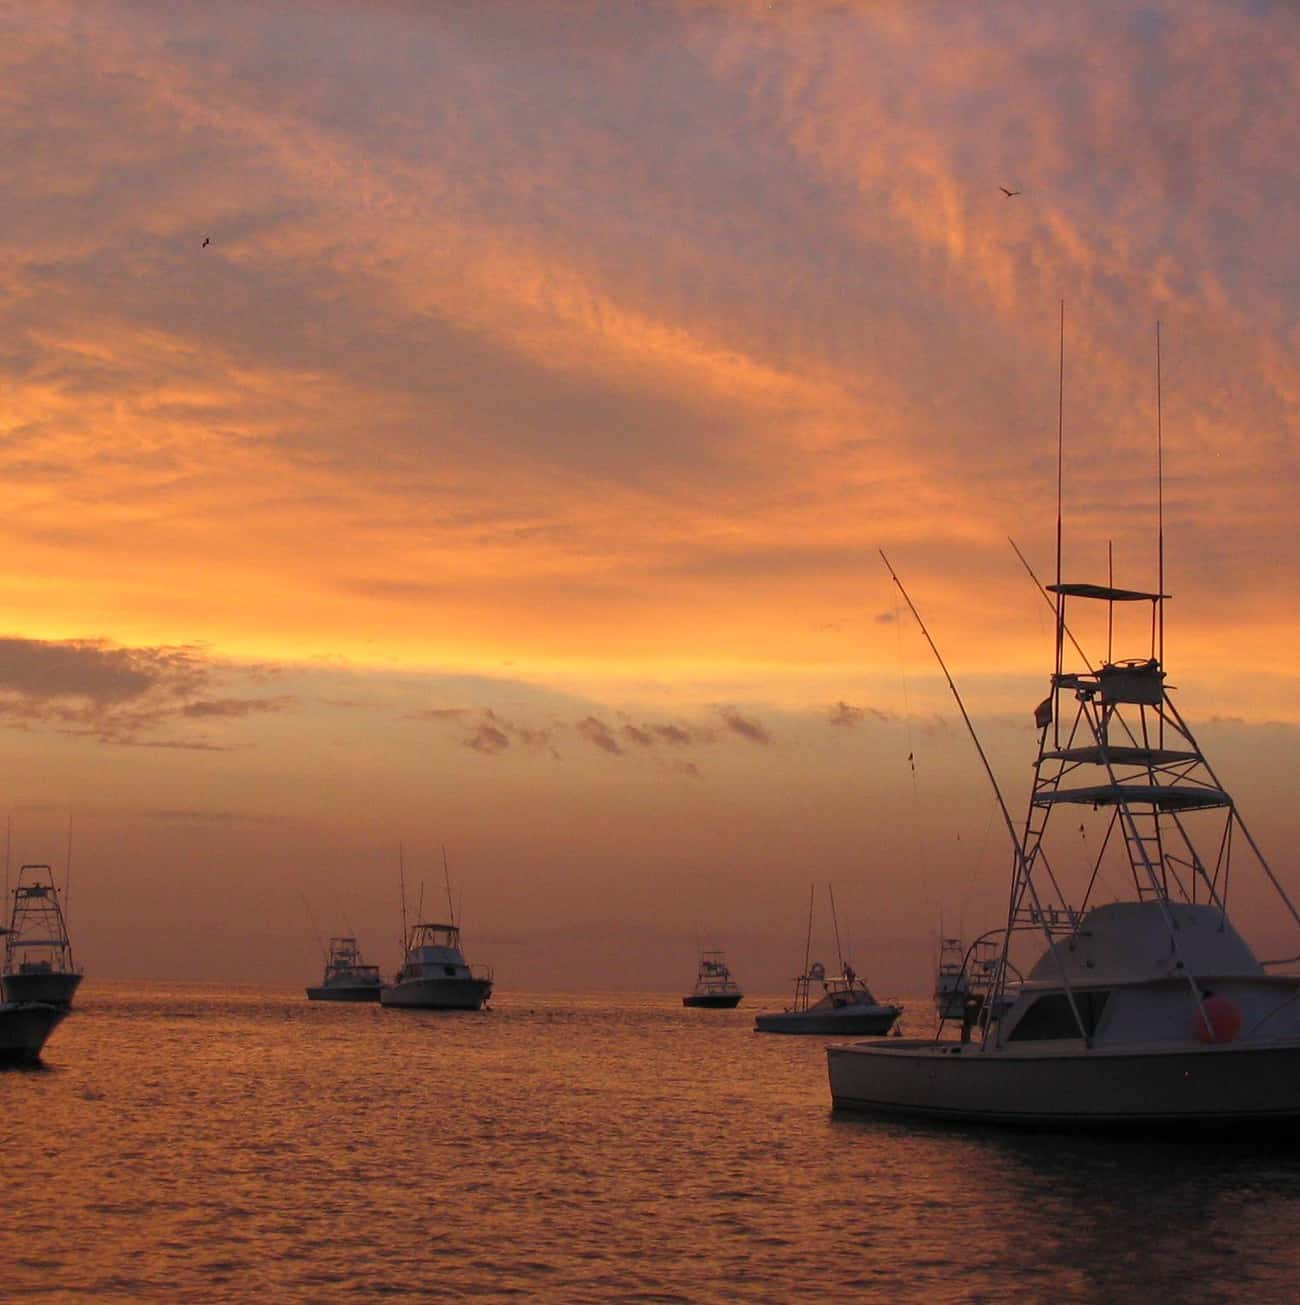 Red Skies at Night, Sailor's D is listed (or ranked) 2 on the list 15 Old Wives' Tales That Are Completely True